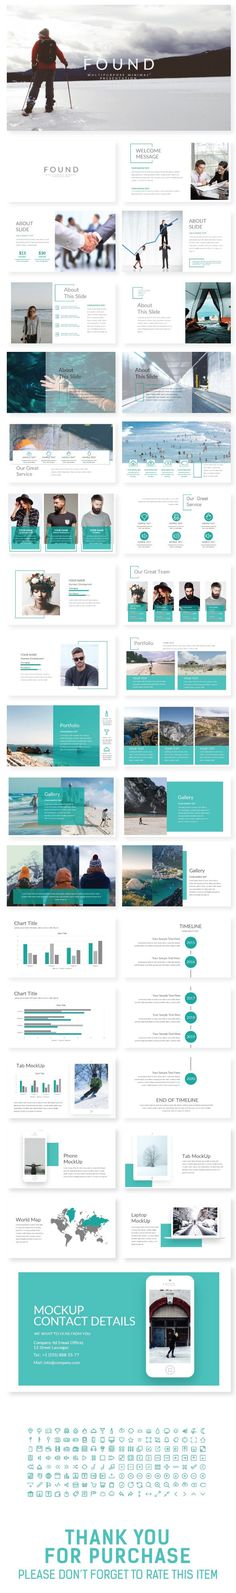 FOUND Presentation Template - Creative PowerPoint Templates